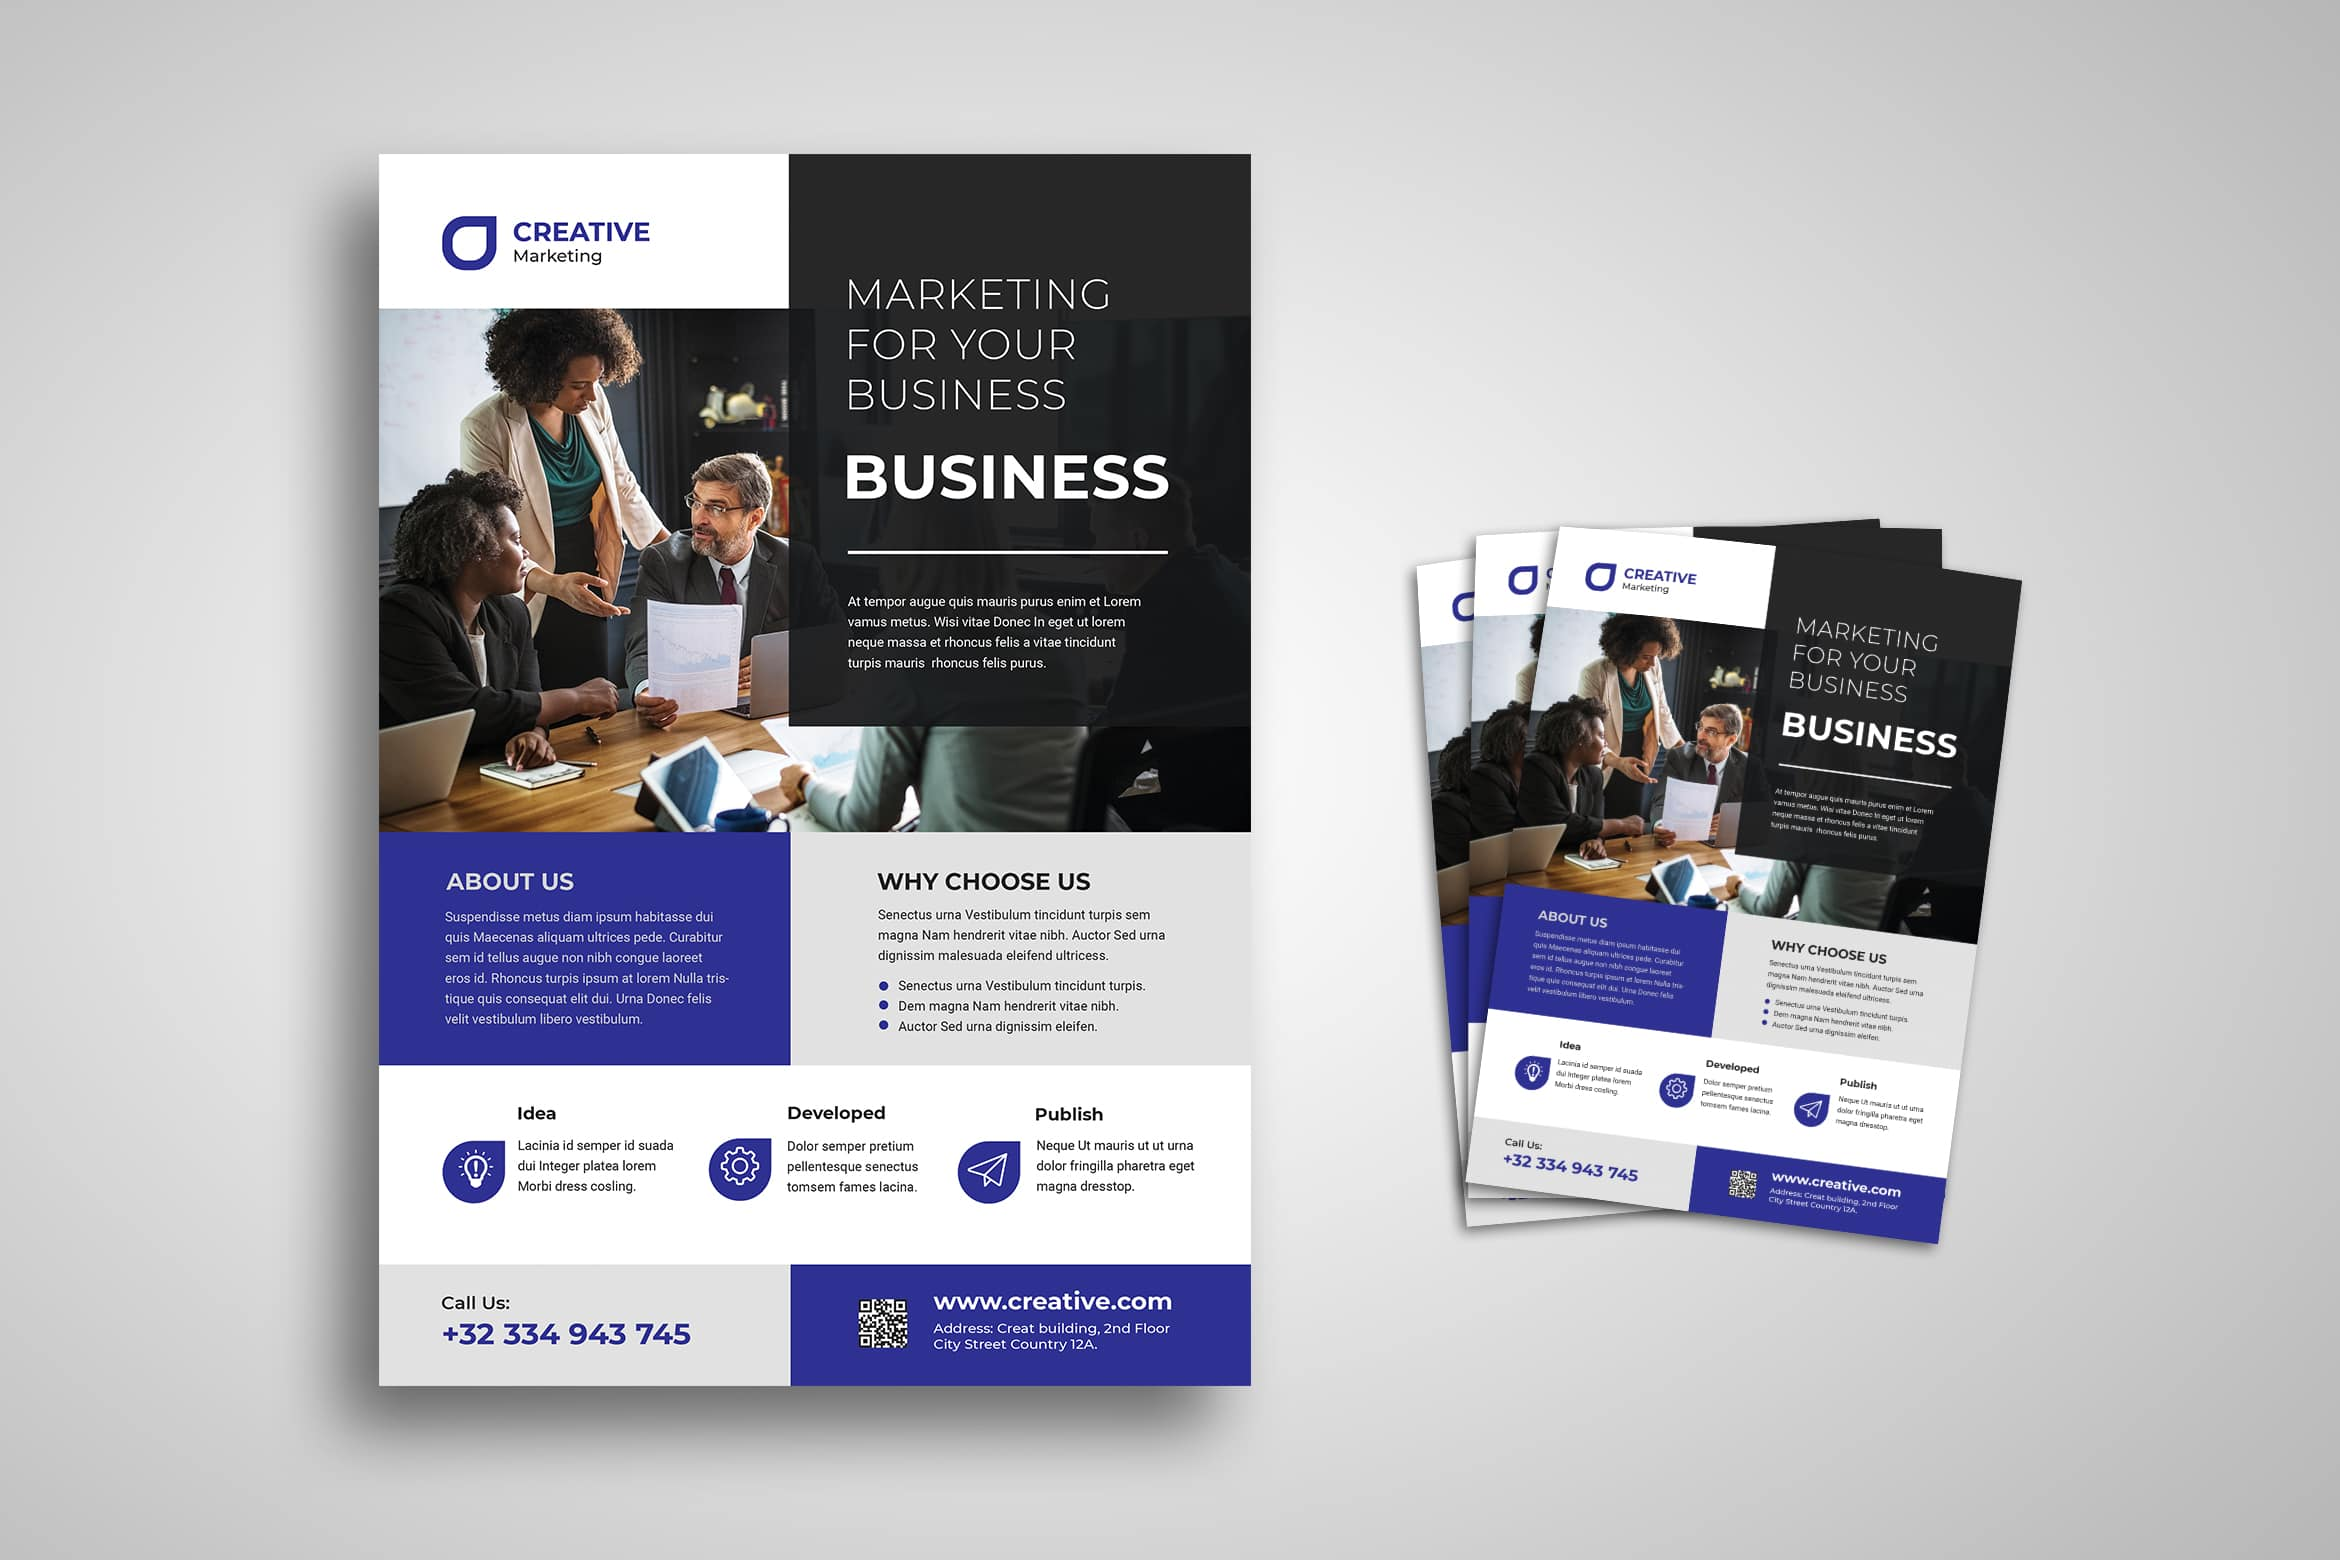 Flyer Template - Marketing Development & Publication